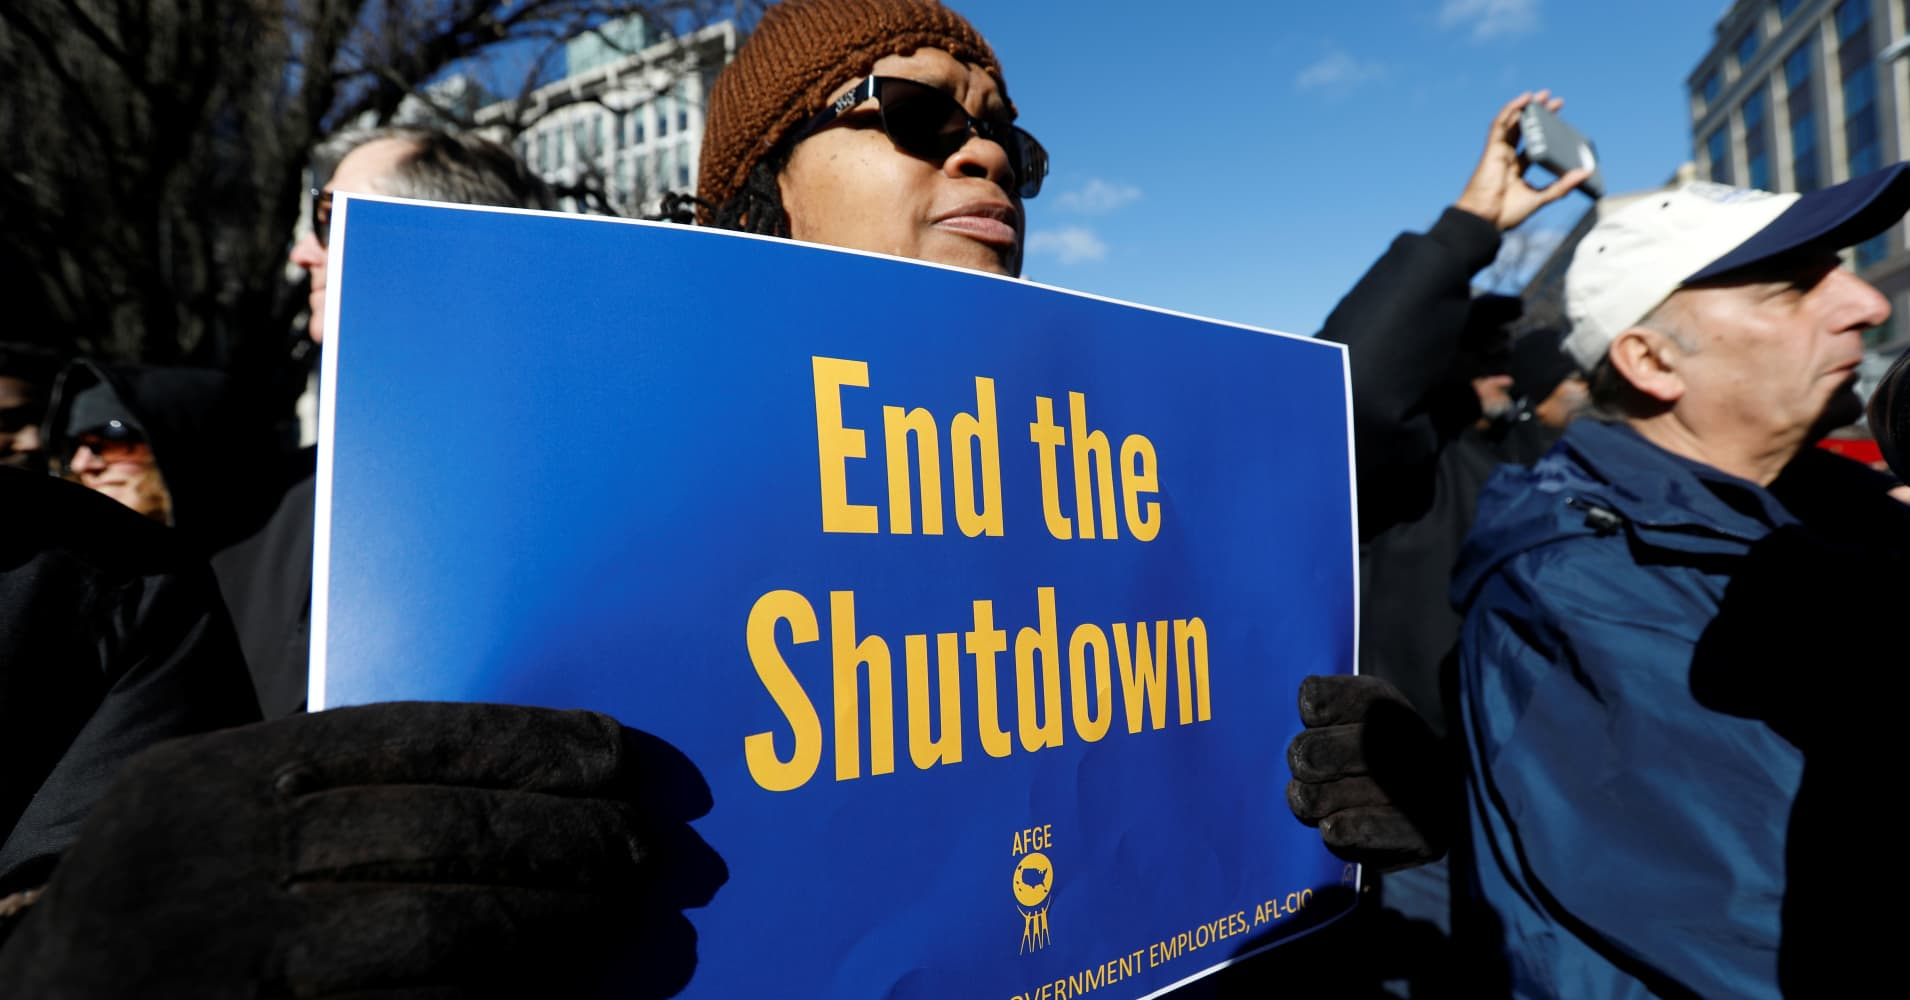 20 organizations offering discounts, giveaways and payment assistance during the government shutdown